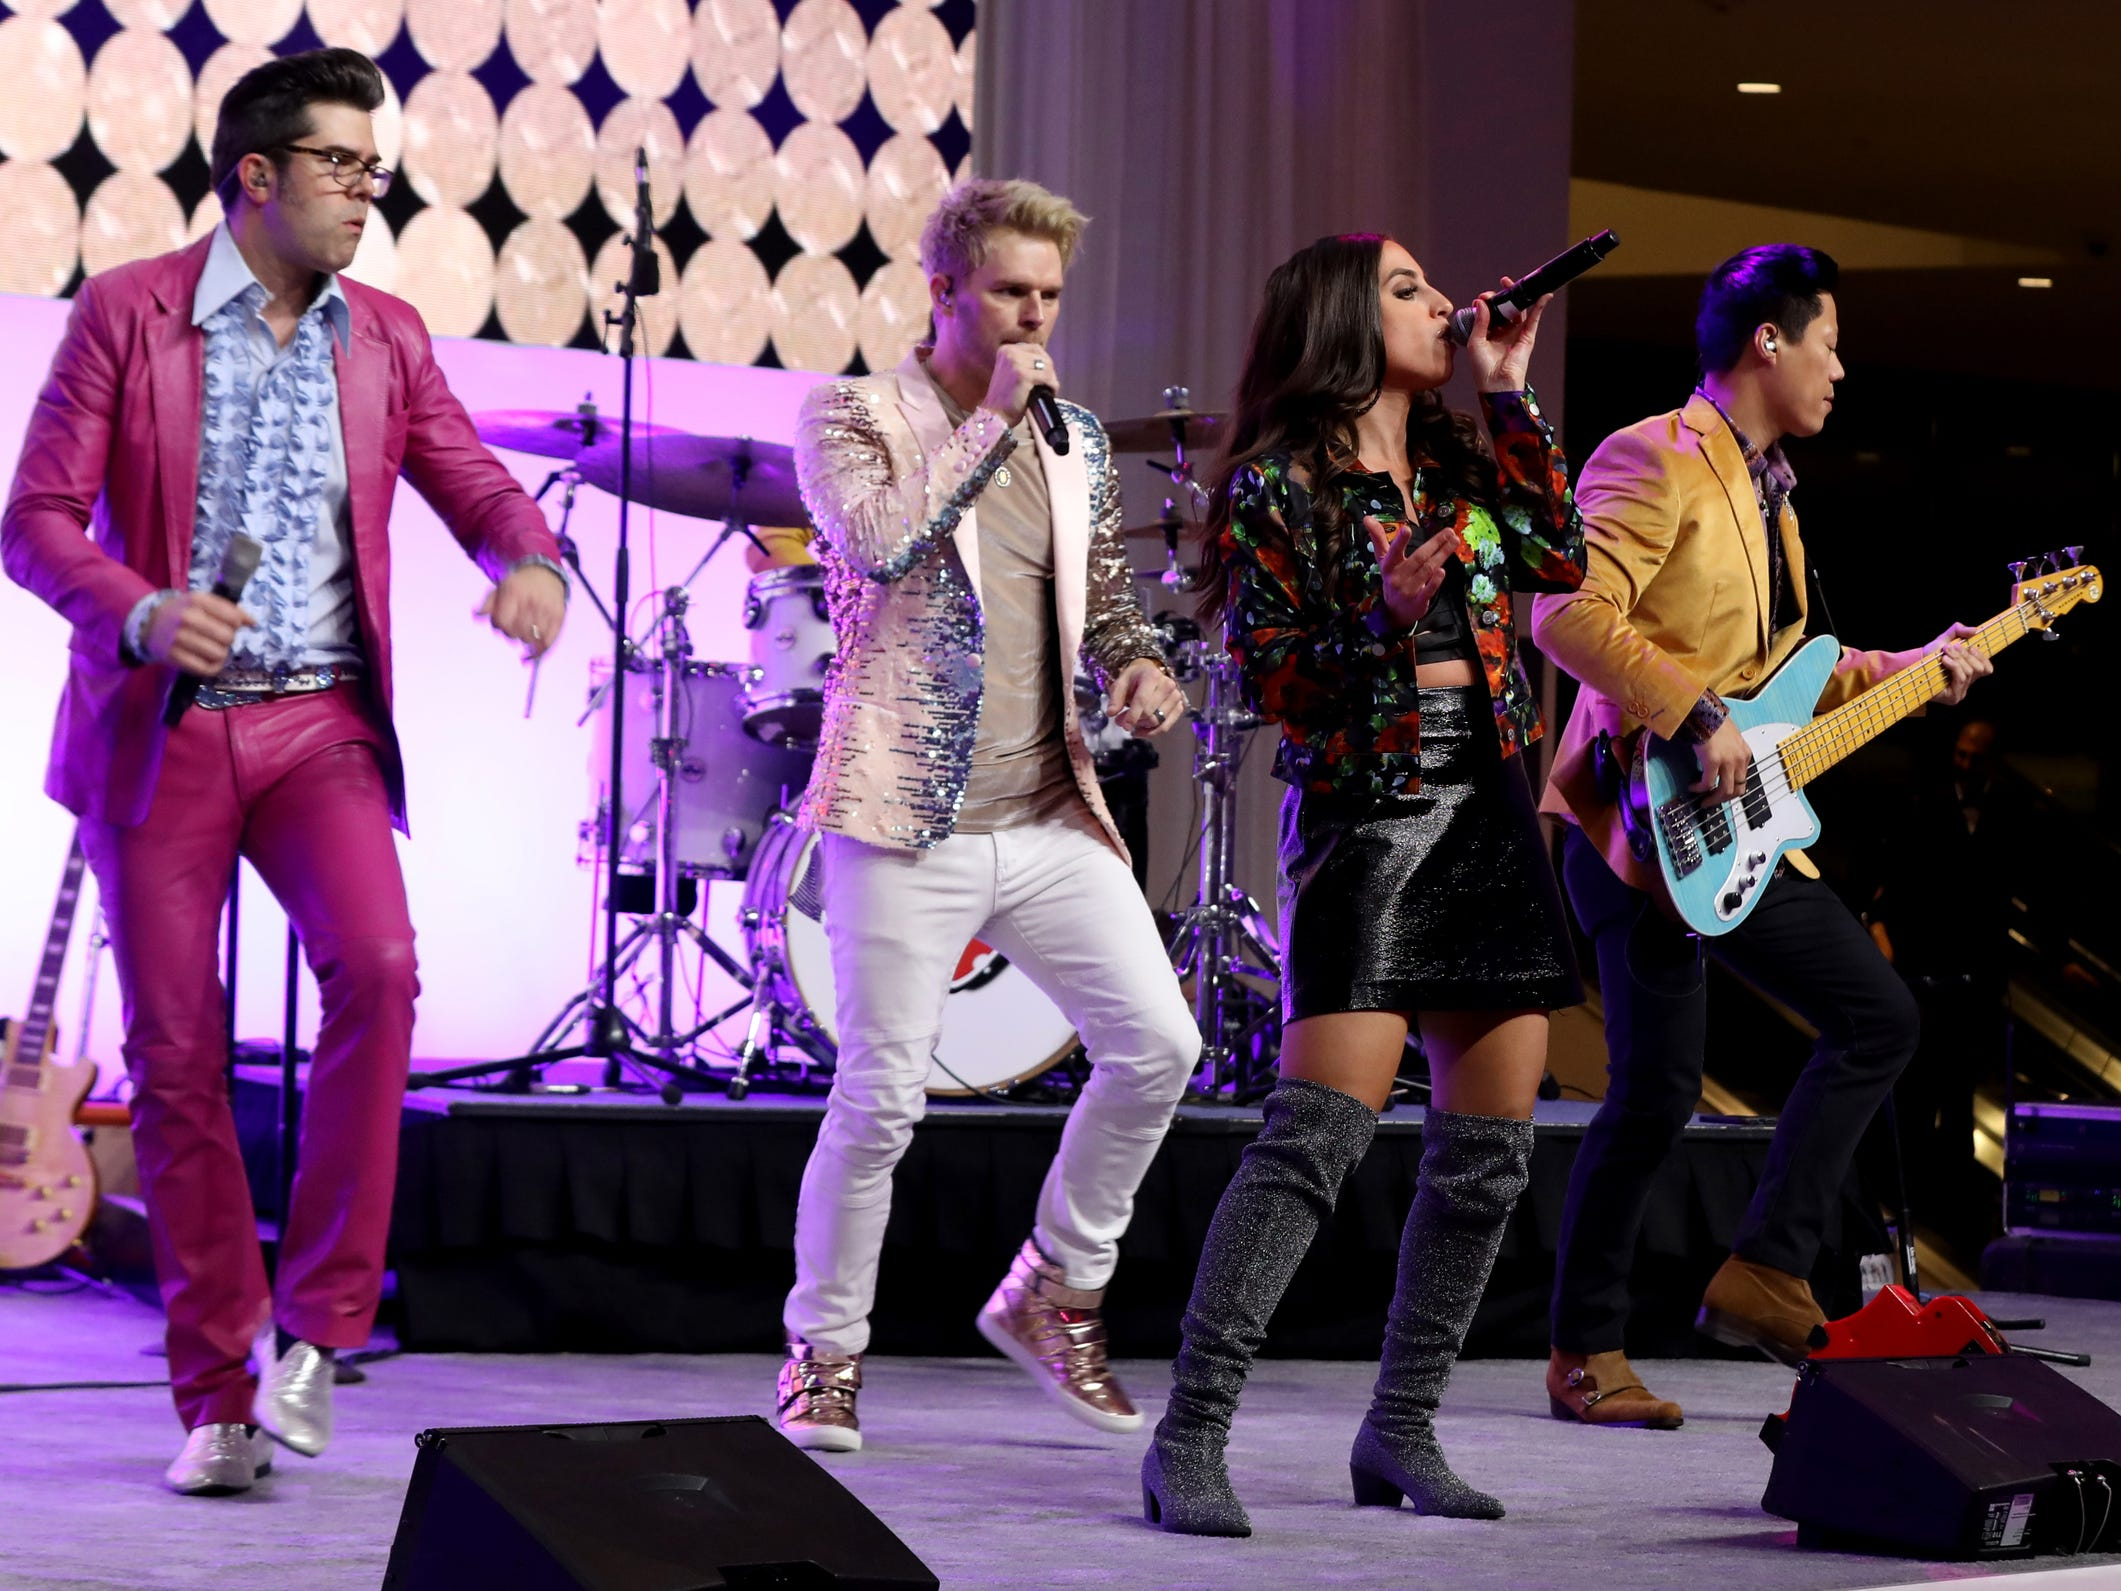 Your Generation performs for the 2019 North American International Auto Show Charity Preview crowd at Cobo Center in Detroit on Friday, January 18, 2019.